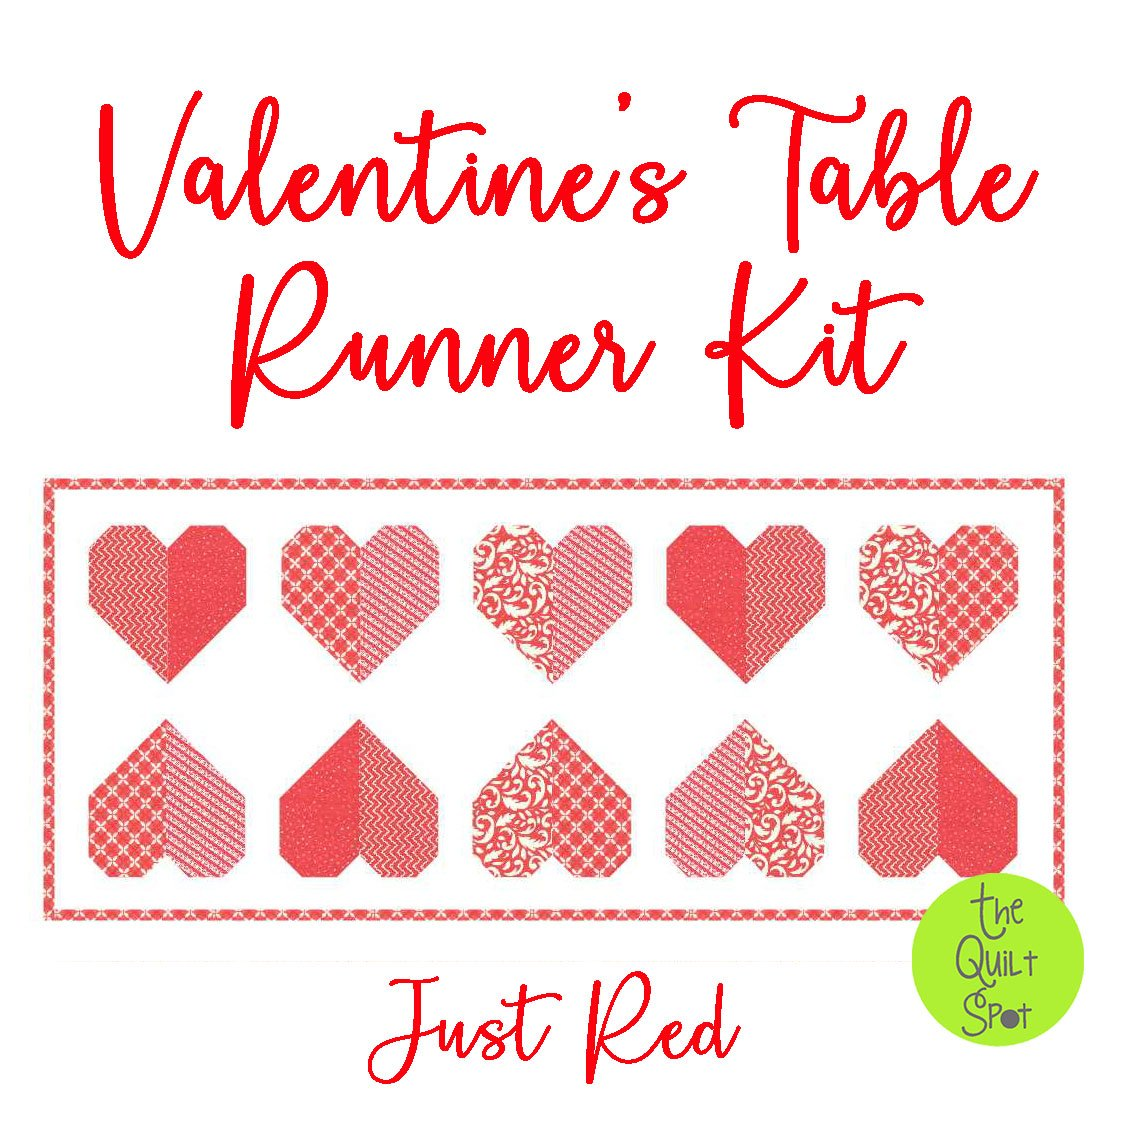 Valentine's Table Runner Kit - Just Red Edition FABRIC ONLY